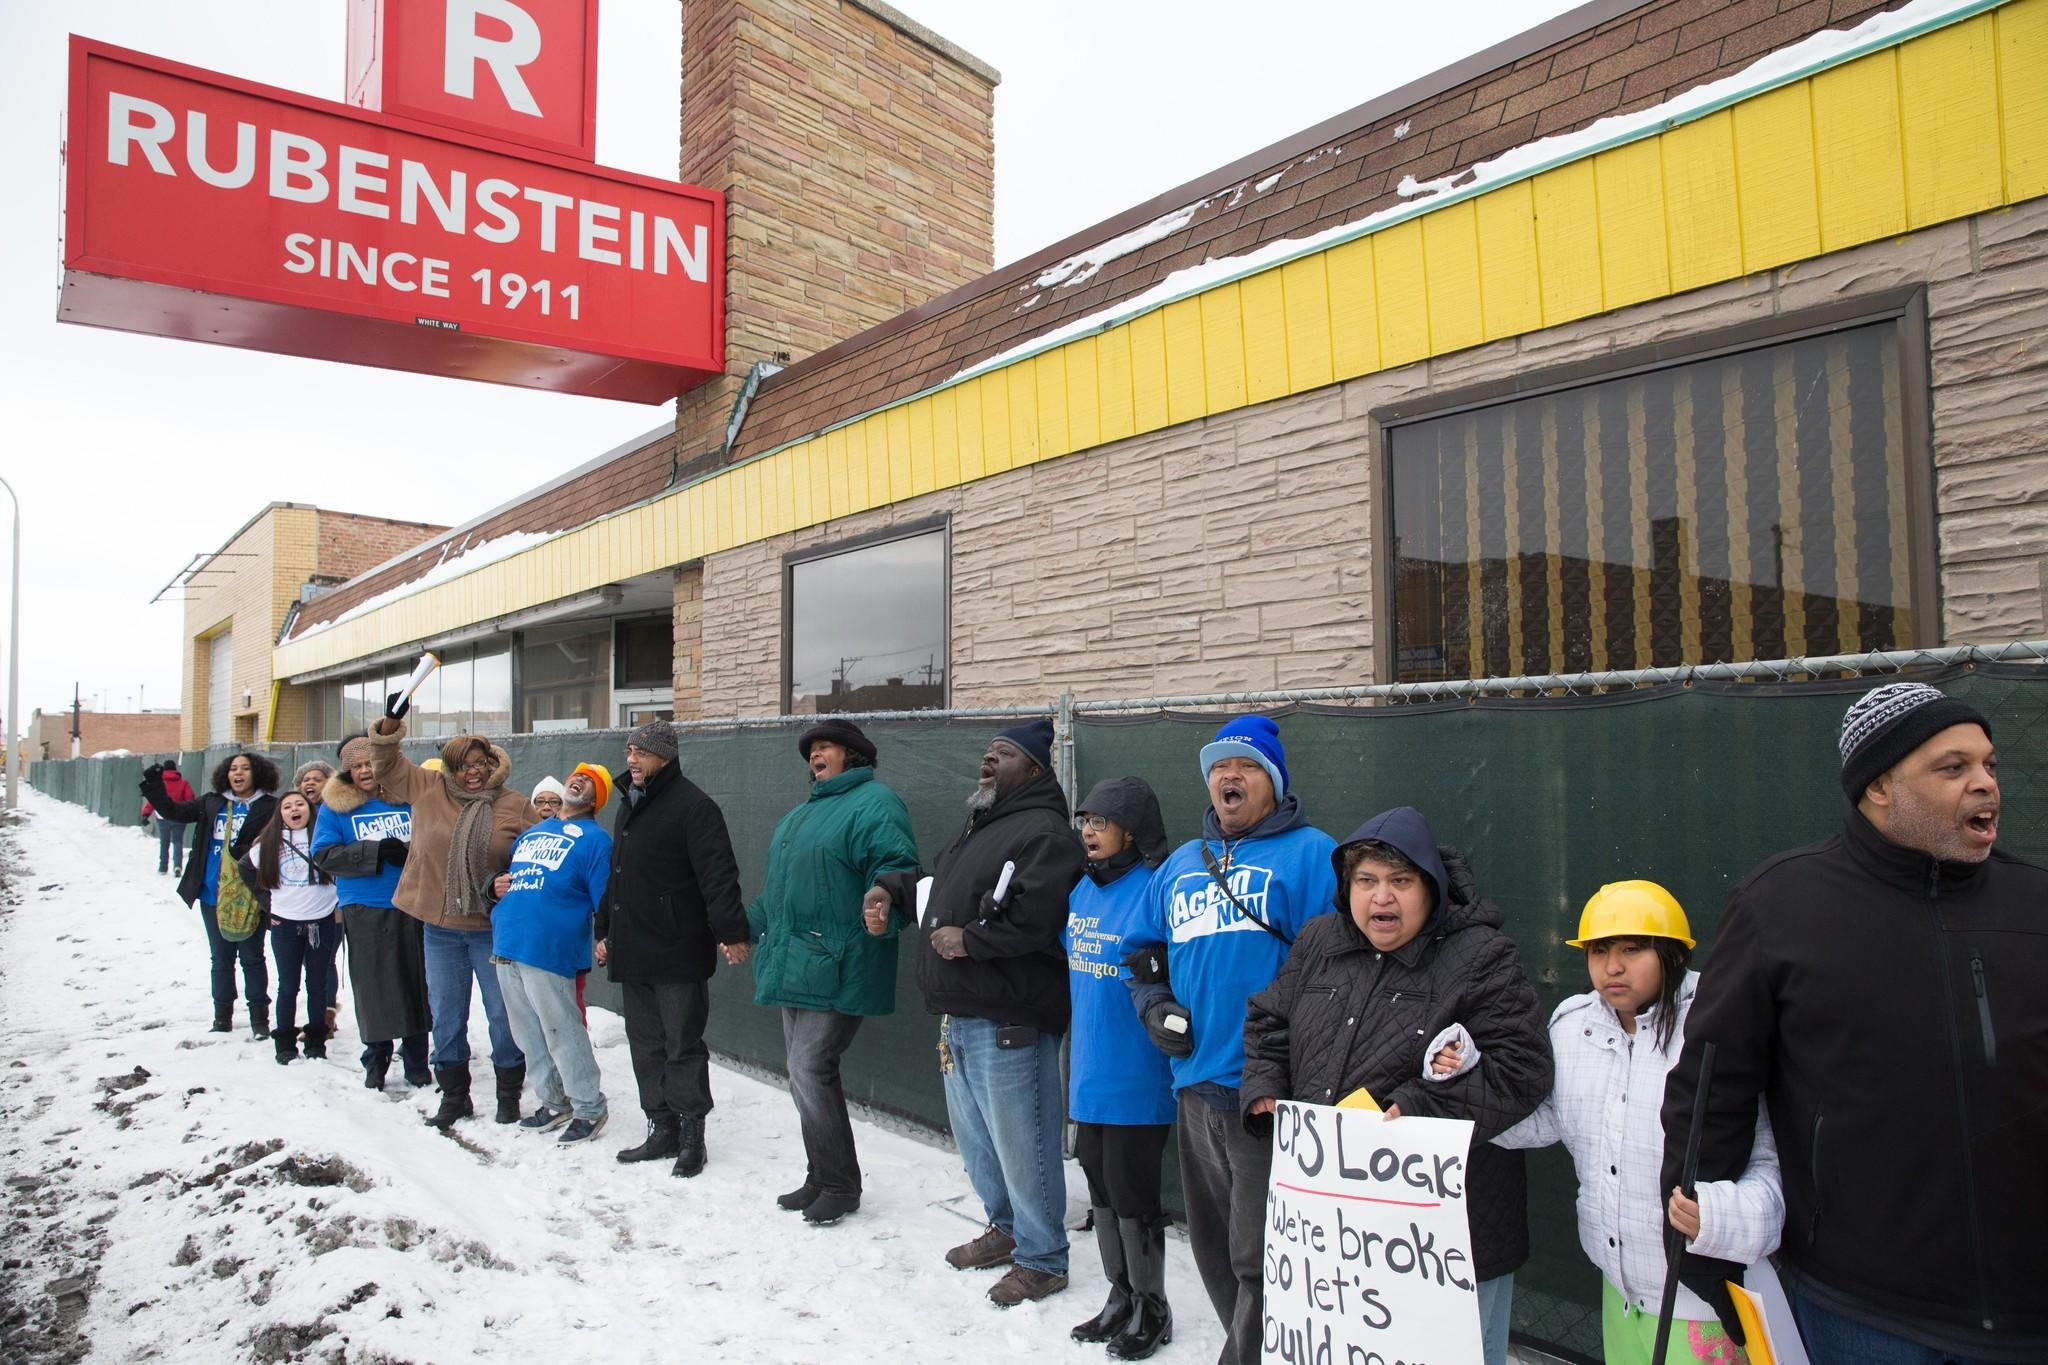 Community groups gather for a protest outside the proposed site for a new charter school in the Austin community of Chicago on Monday. An existing high school is across the street and the groups believe any money available for schools should support existing ones.